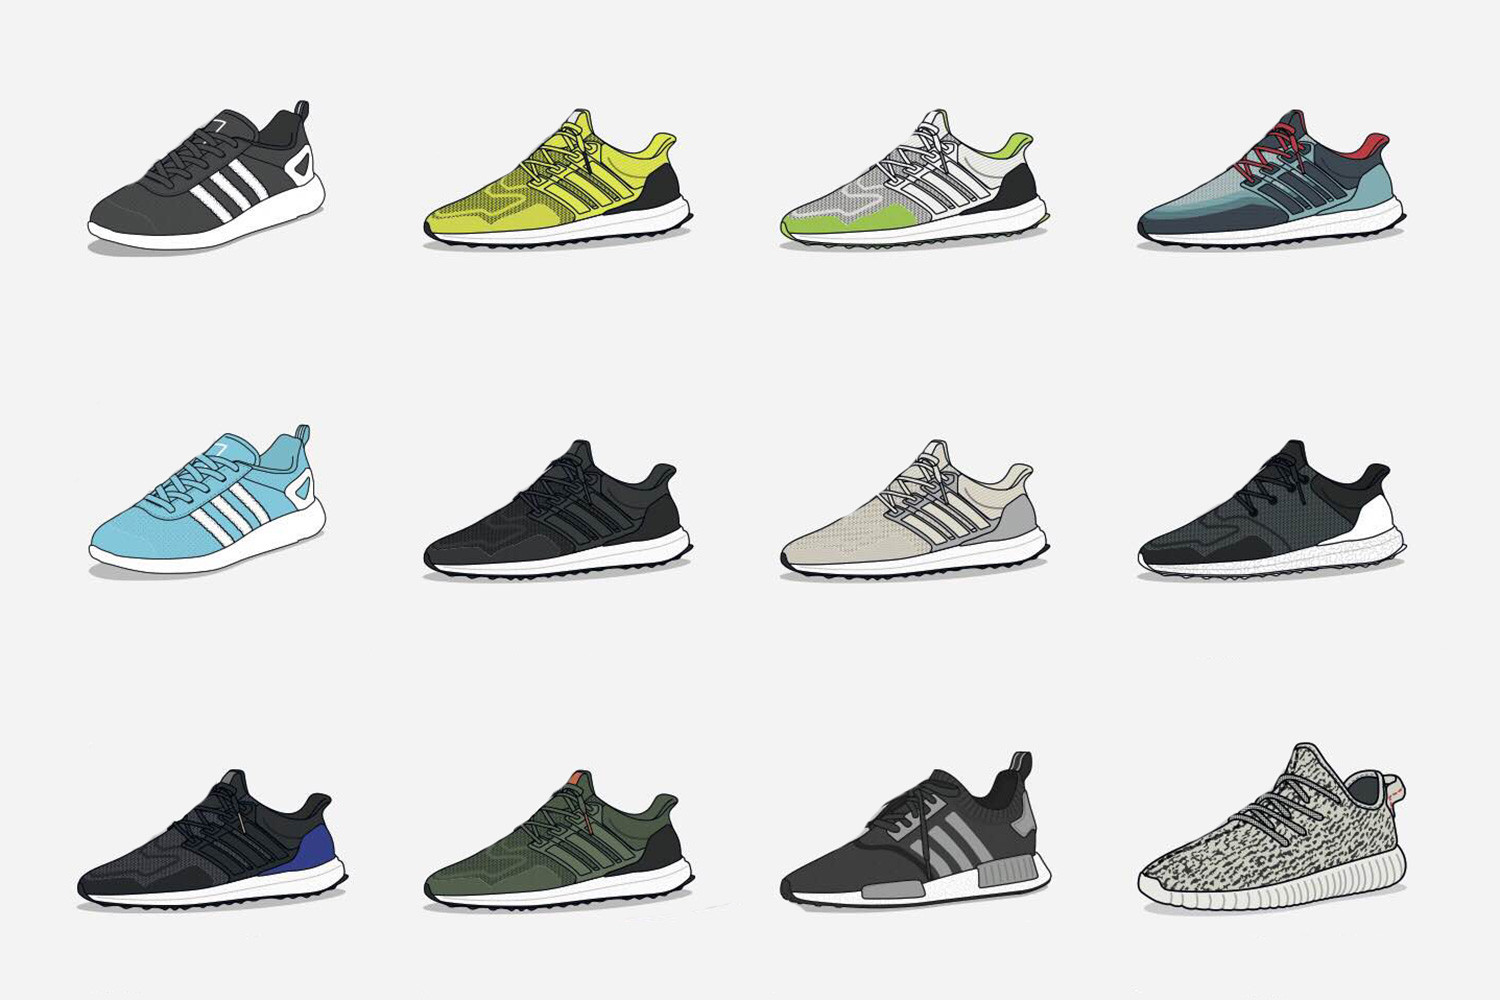 The Most Hyped Boost Sneakers of 2015